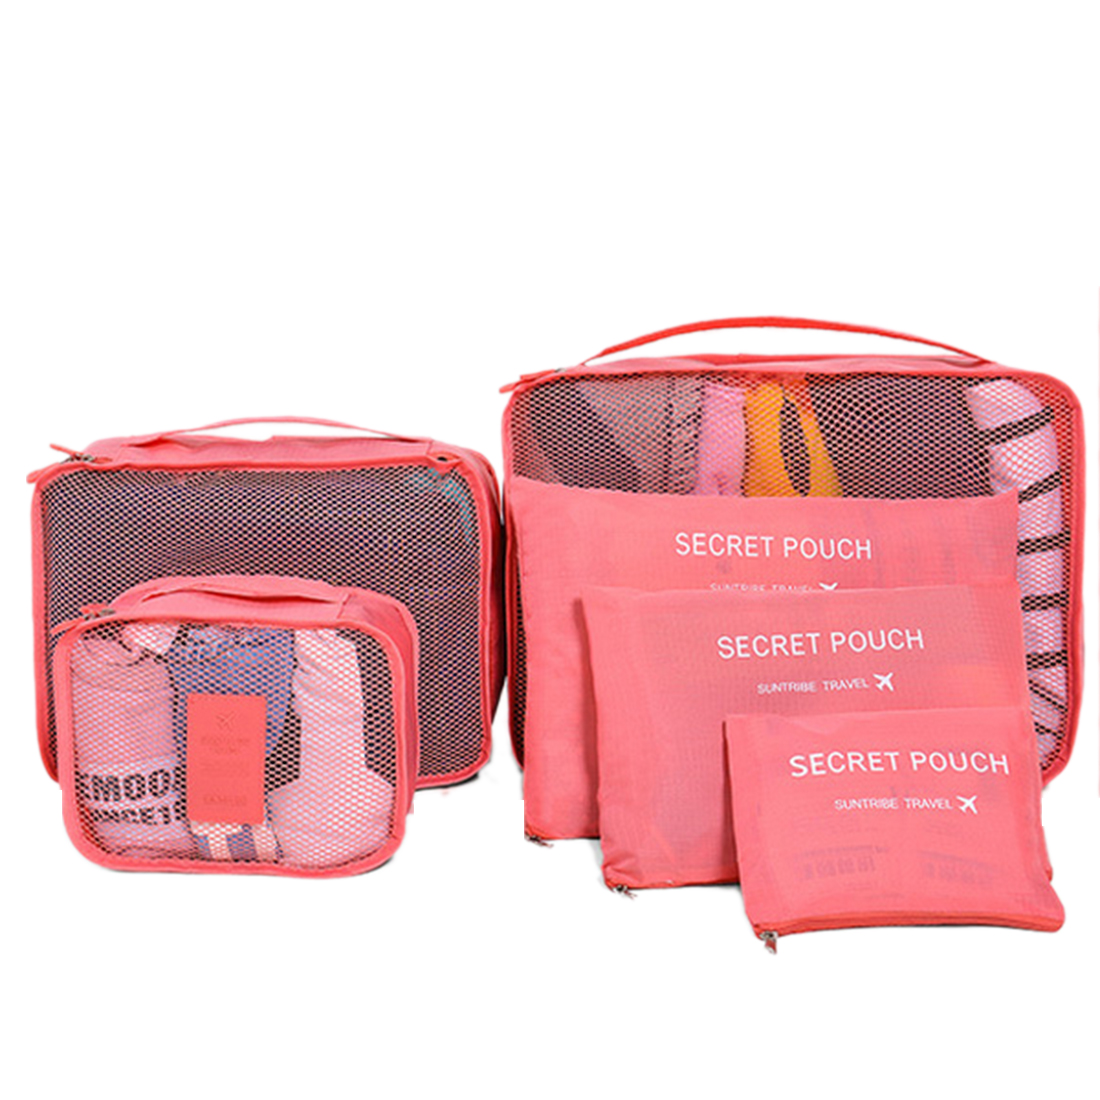 6Pcs Waterproof Travel Storage Bags Packing Cube Clothes Pouch Luggage Organizer - Watermelon Red